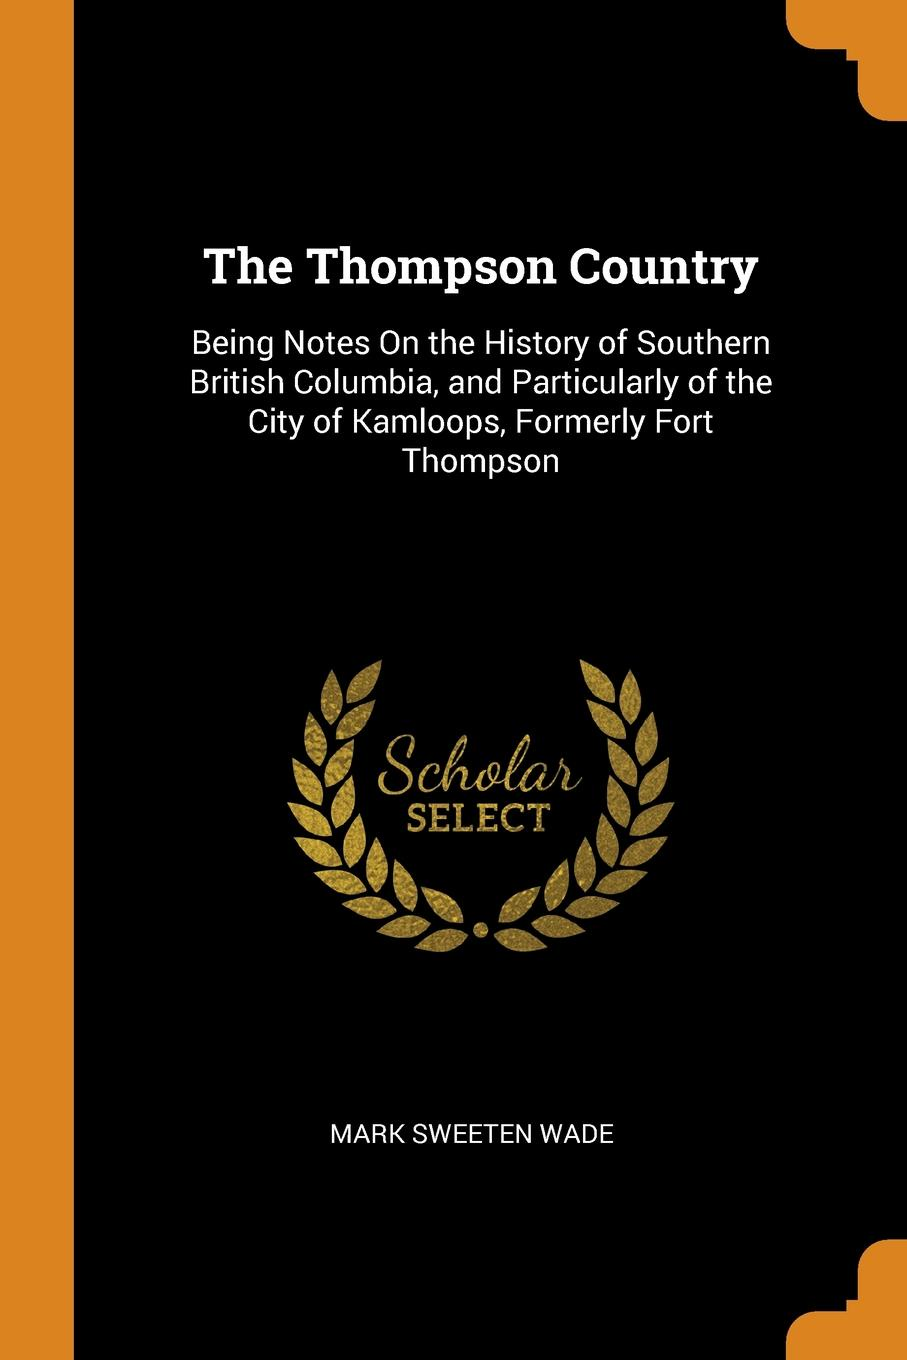 The Thompson Country. Being Notes On the History of Southern British Columbia, and Particularly of the City of Kamloops, Formerly Fort Thompson